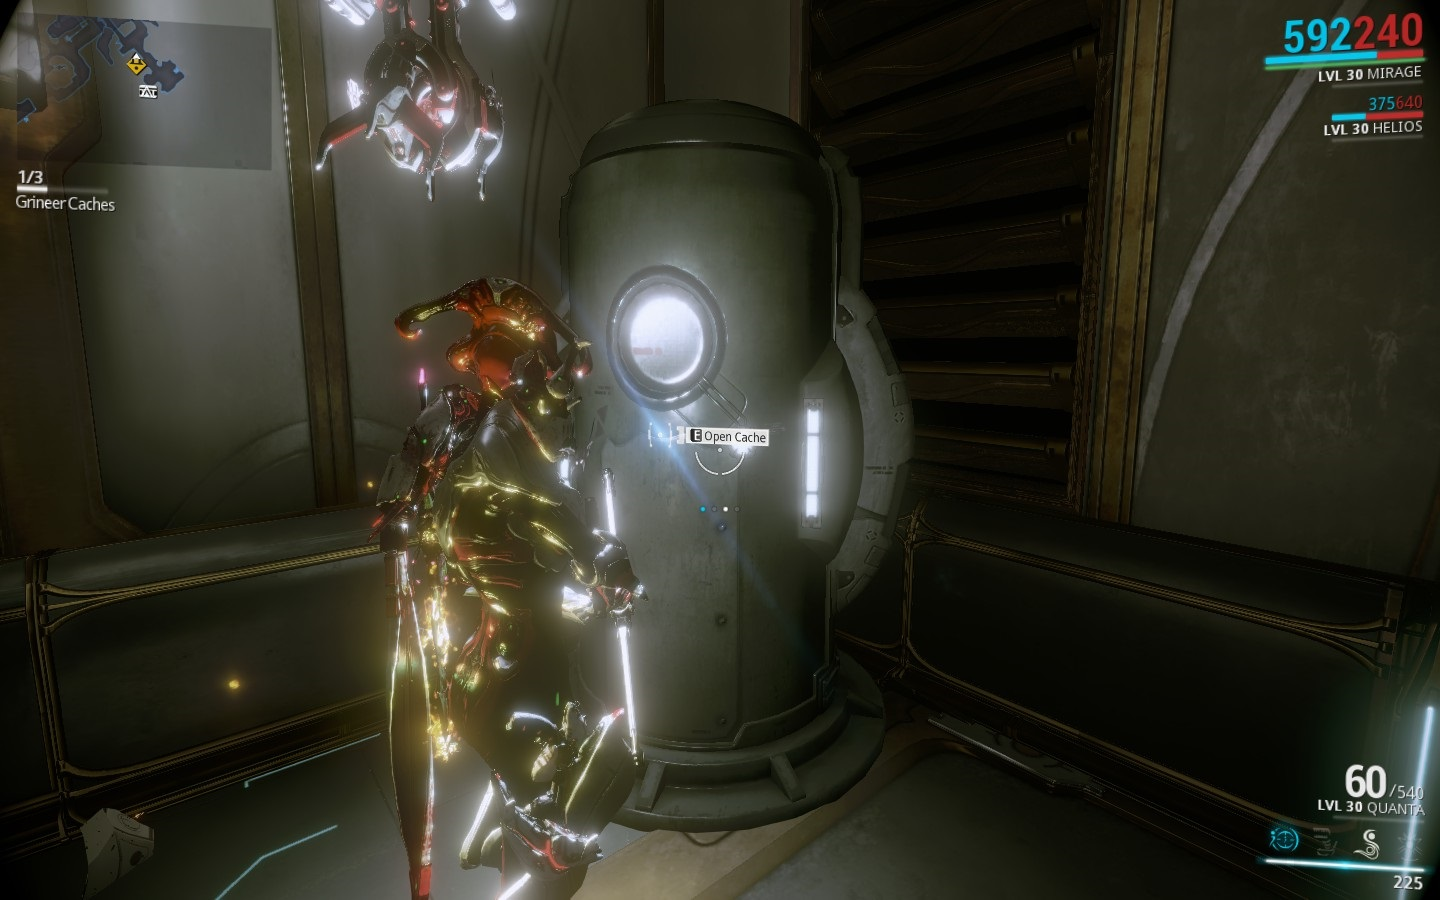 PSA: Grineer Caches spawn in Earth Sabotage Missions ...